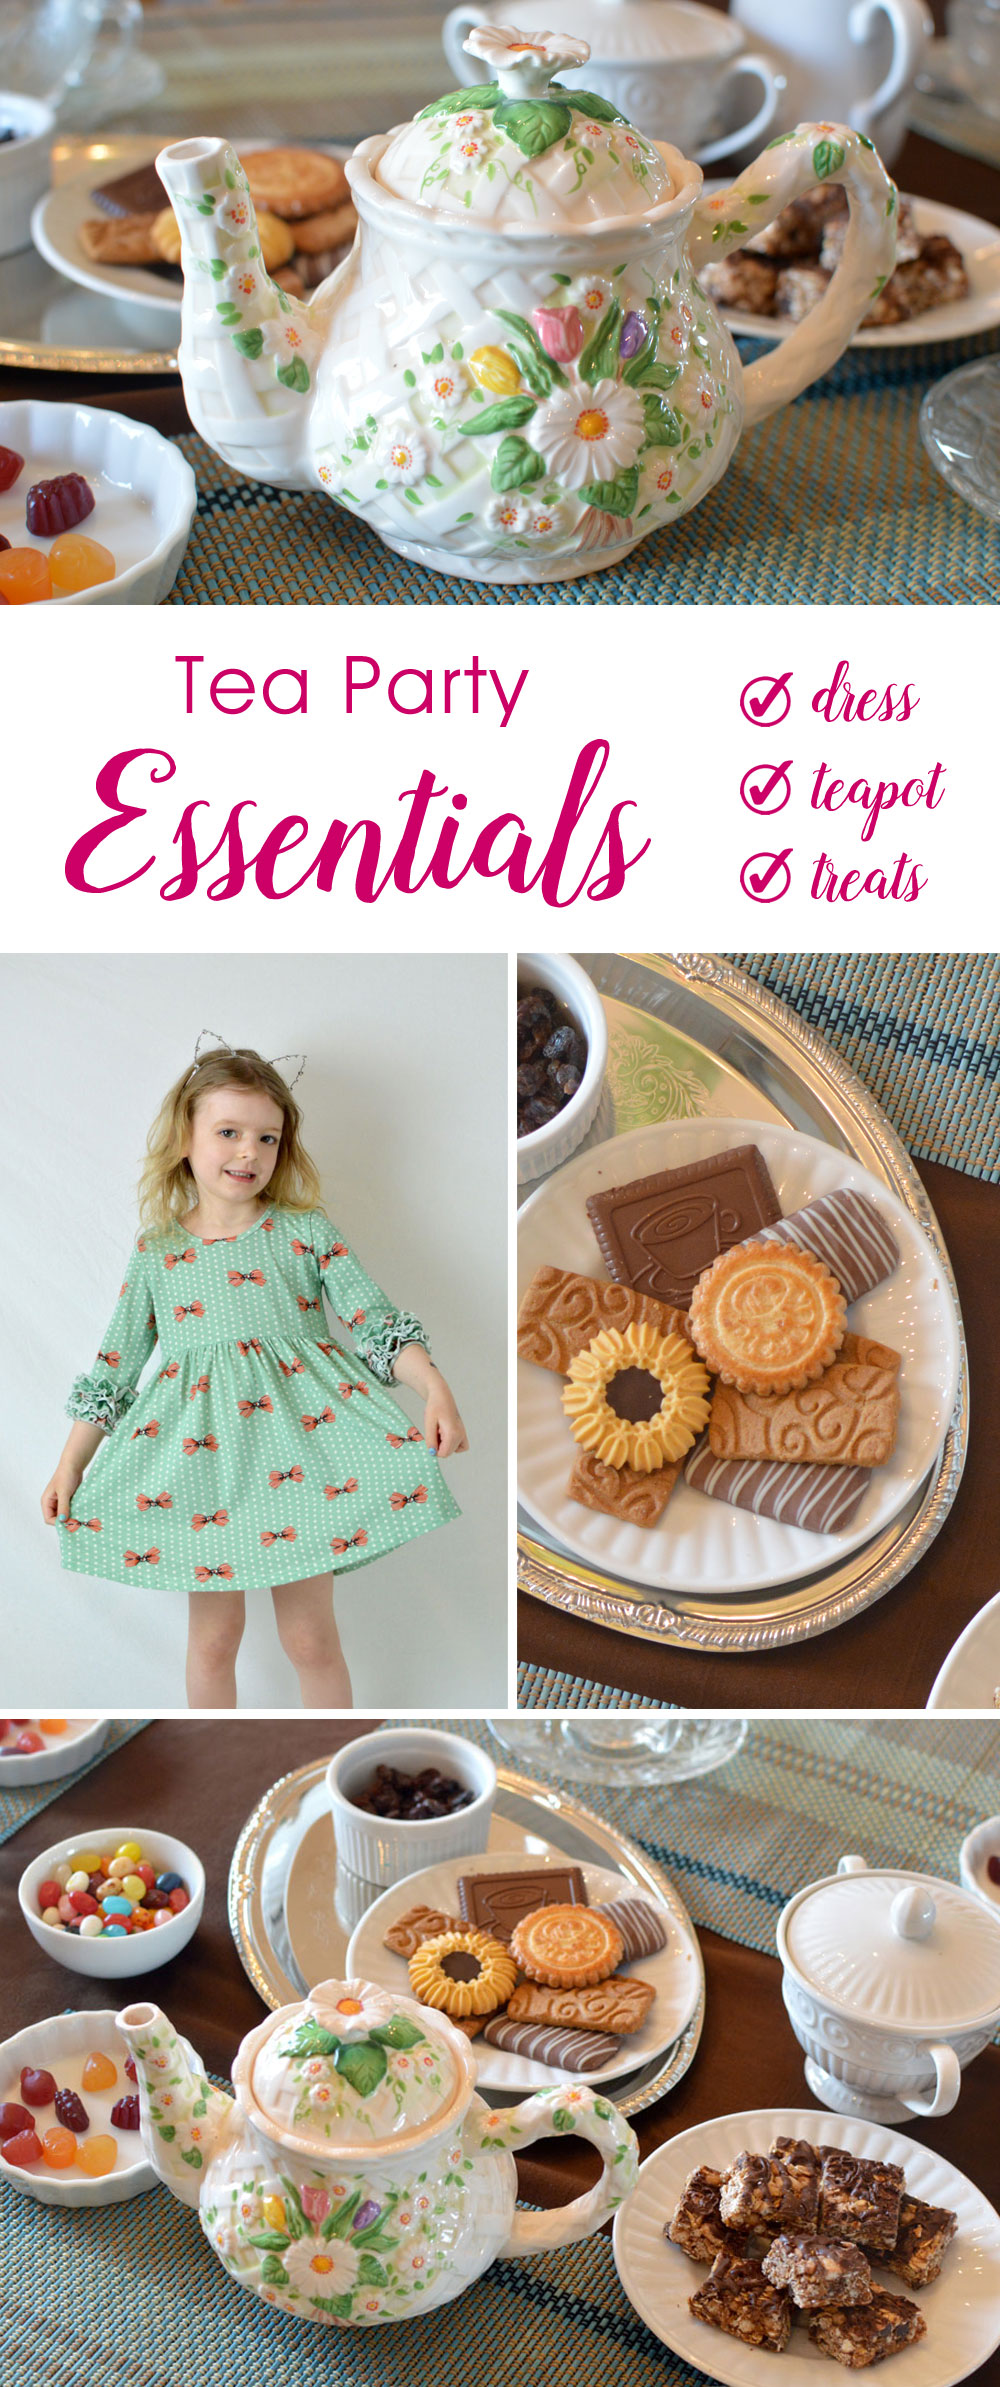 Essentials for any tea party - Mommy Scene